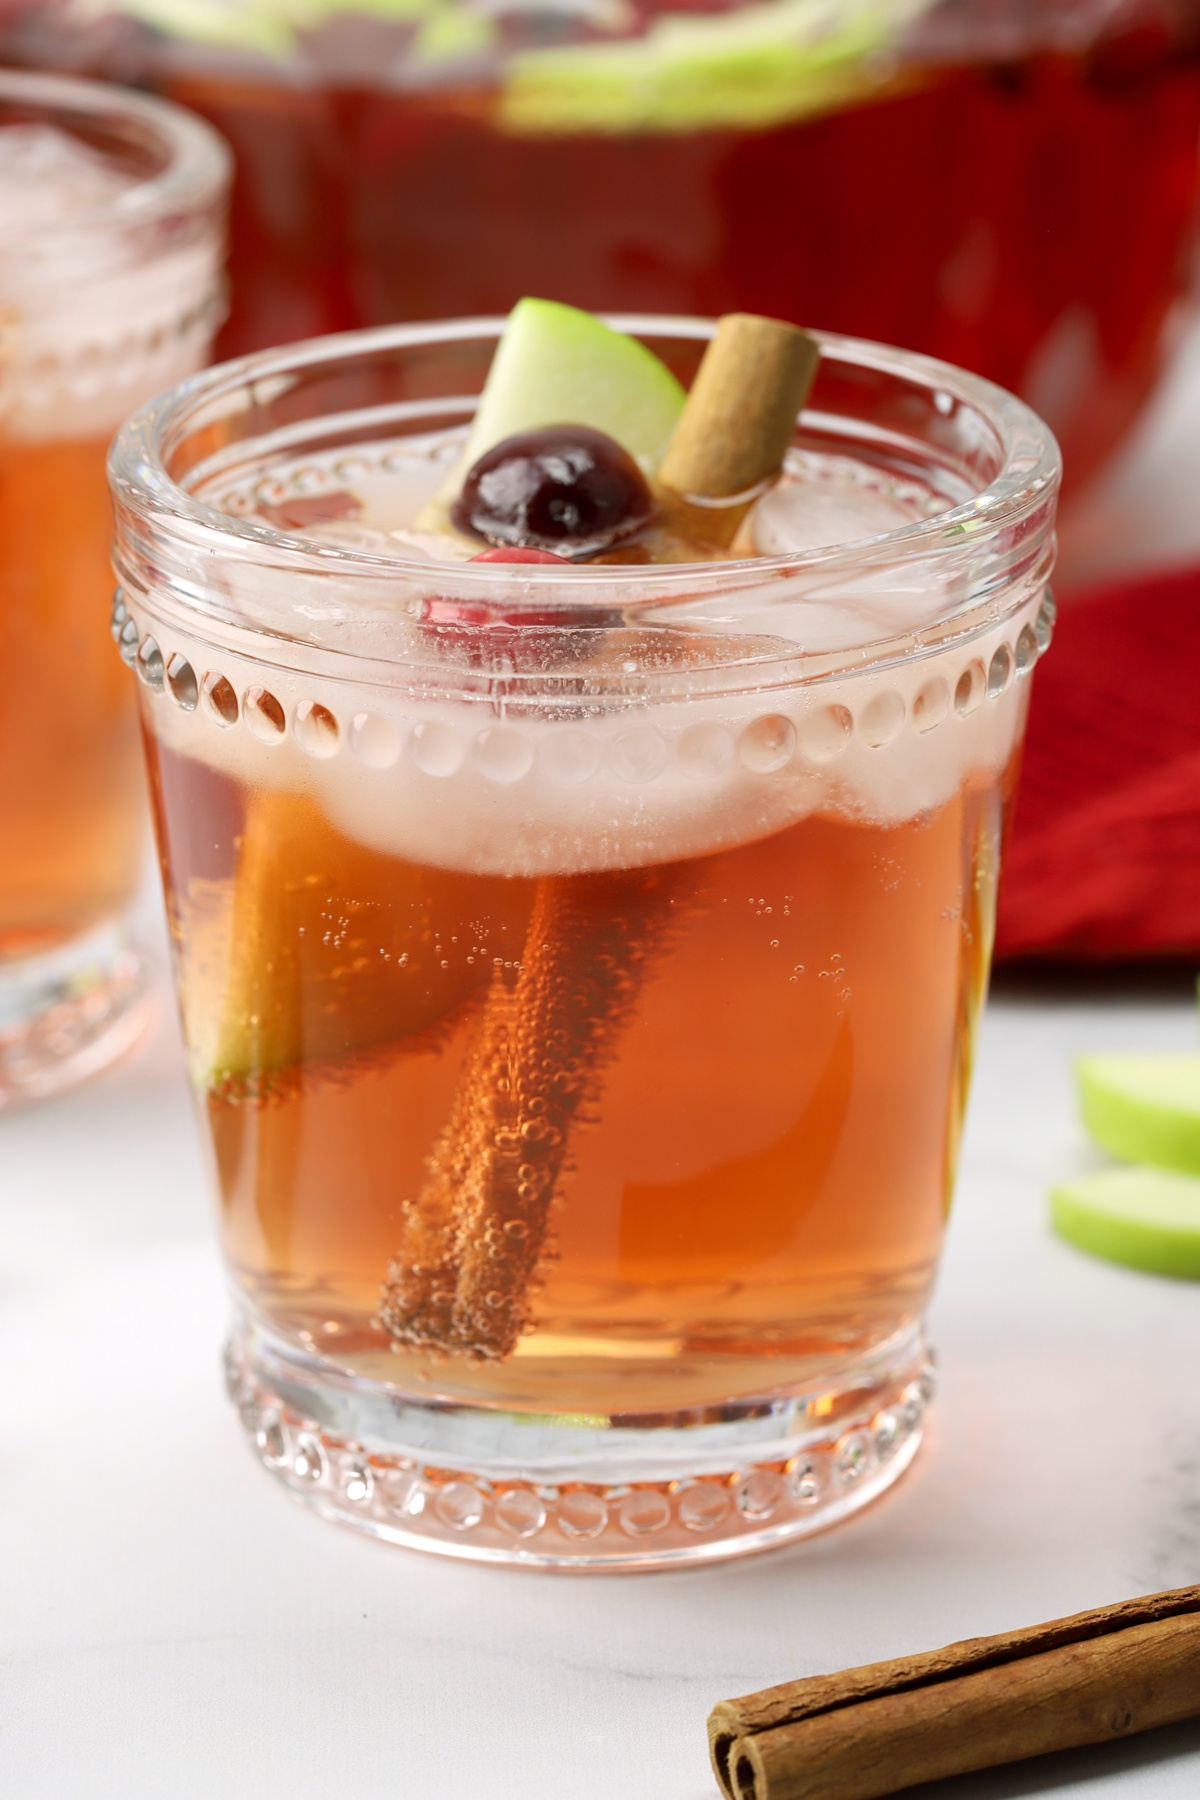 A glass with cinnamon stick, apple wedge, and punch.